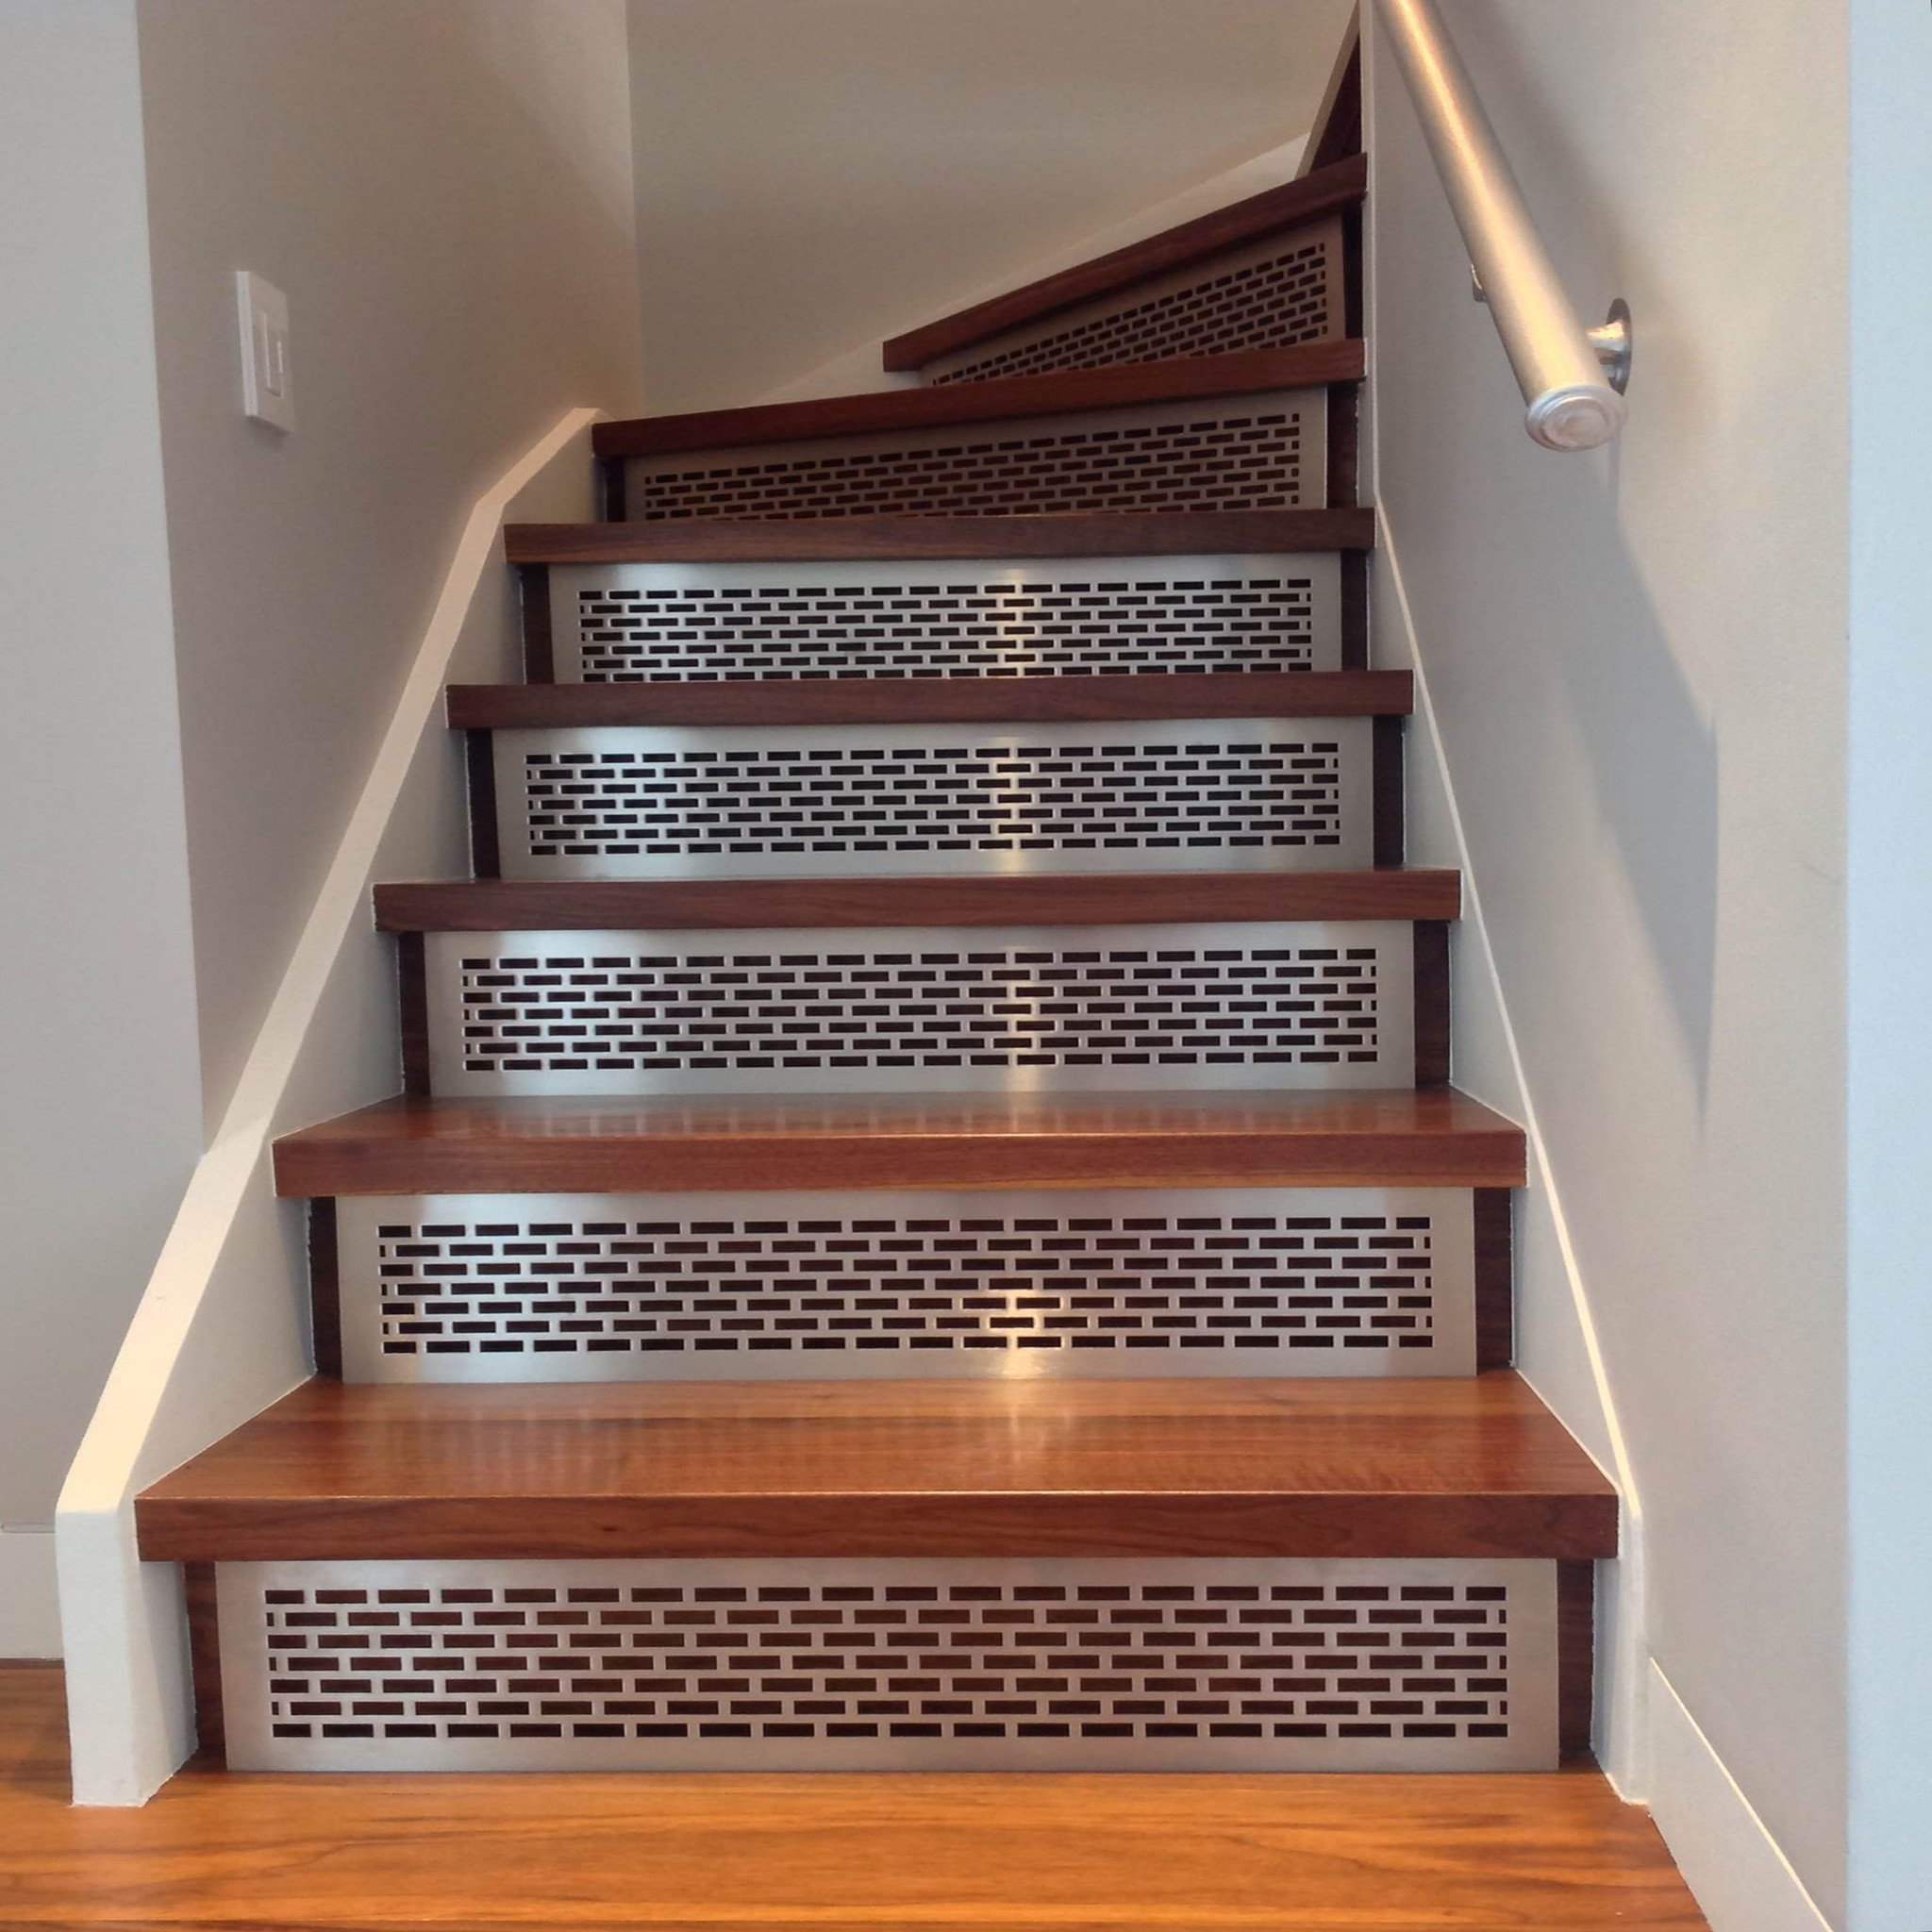 Excellent Decorative Stair Risers 15 Decorative Stair Riser Covers For Decorative Stair Treads (Image 6 of 15)